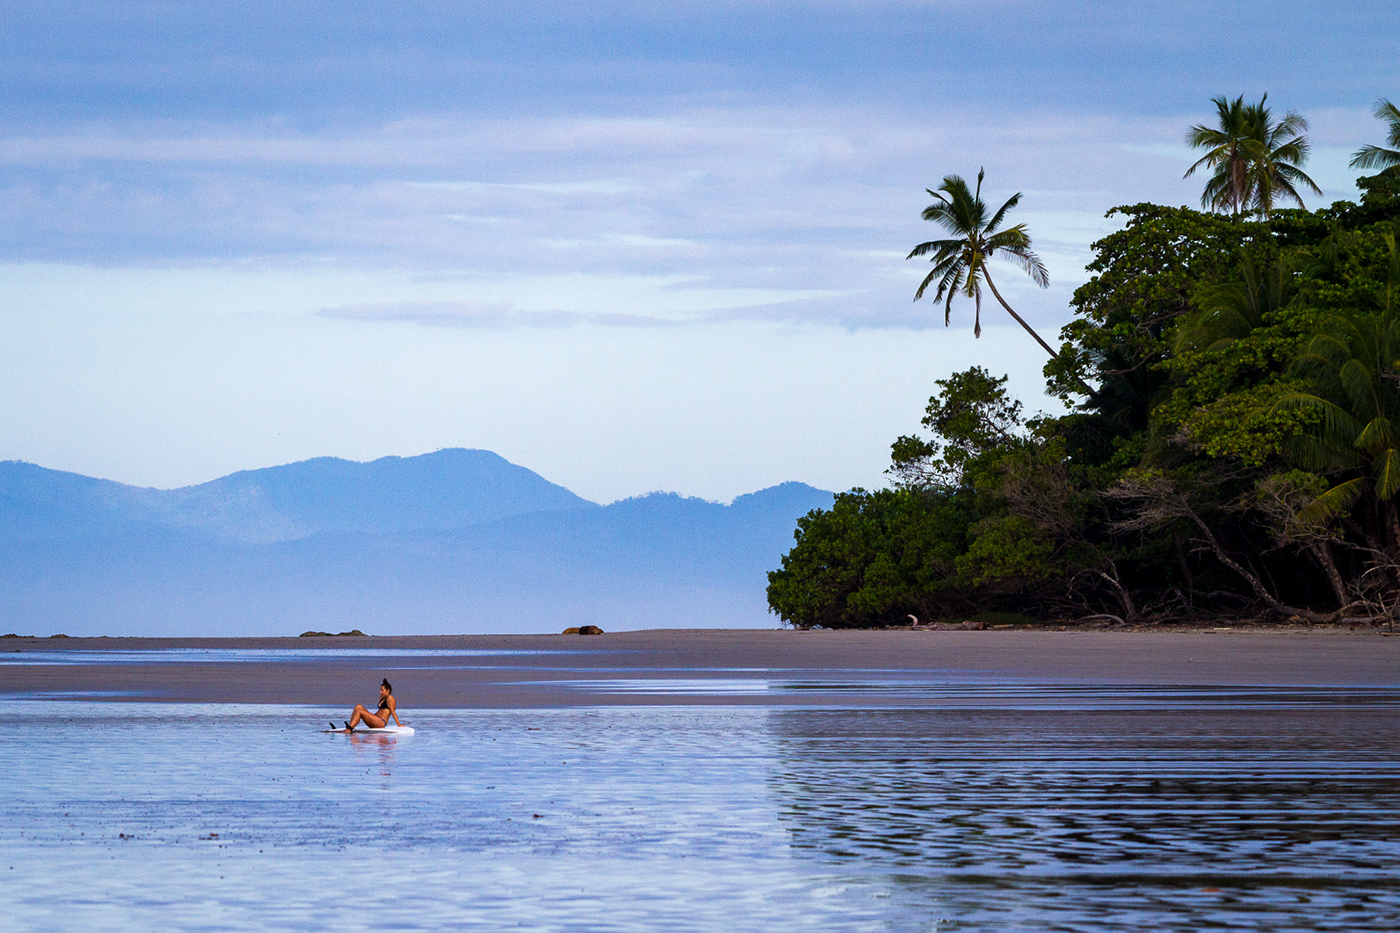 Surf surfing people beach lifestyle sport waves Ocean france Costa Rica